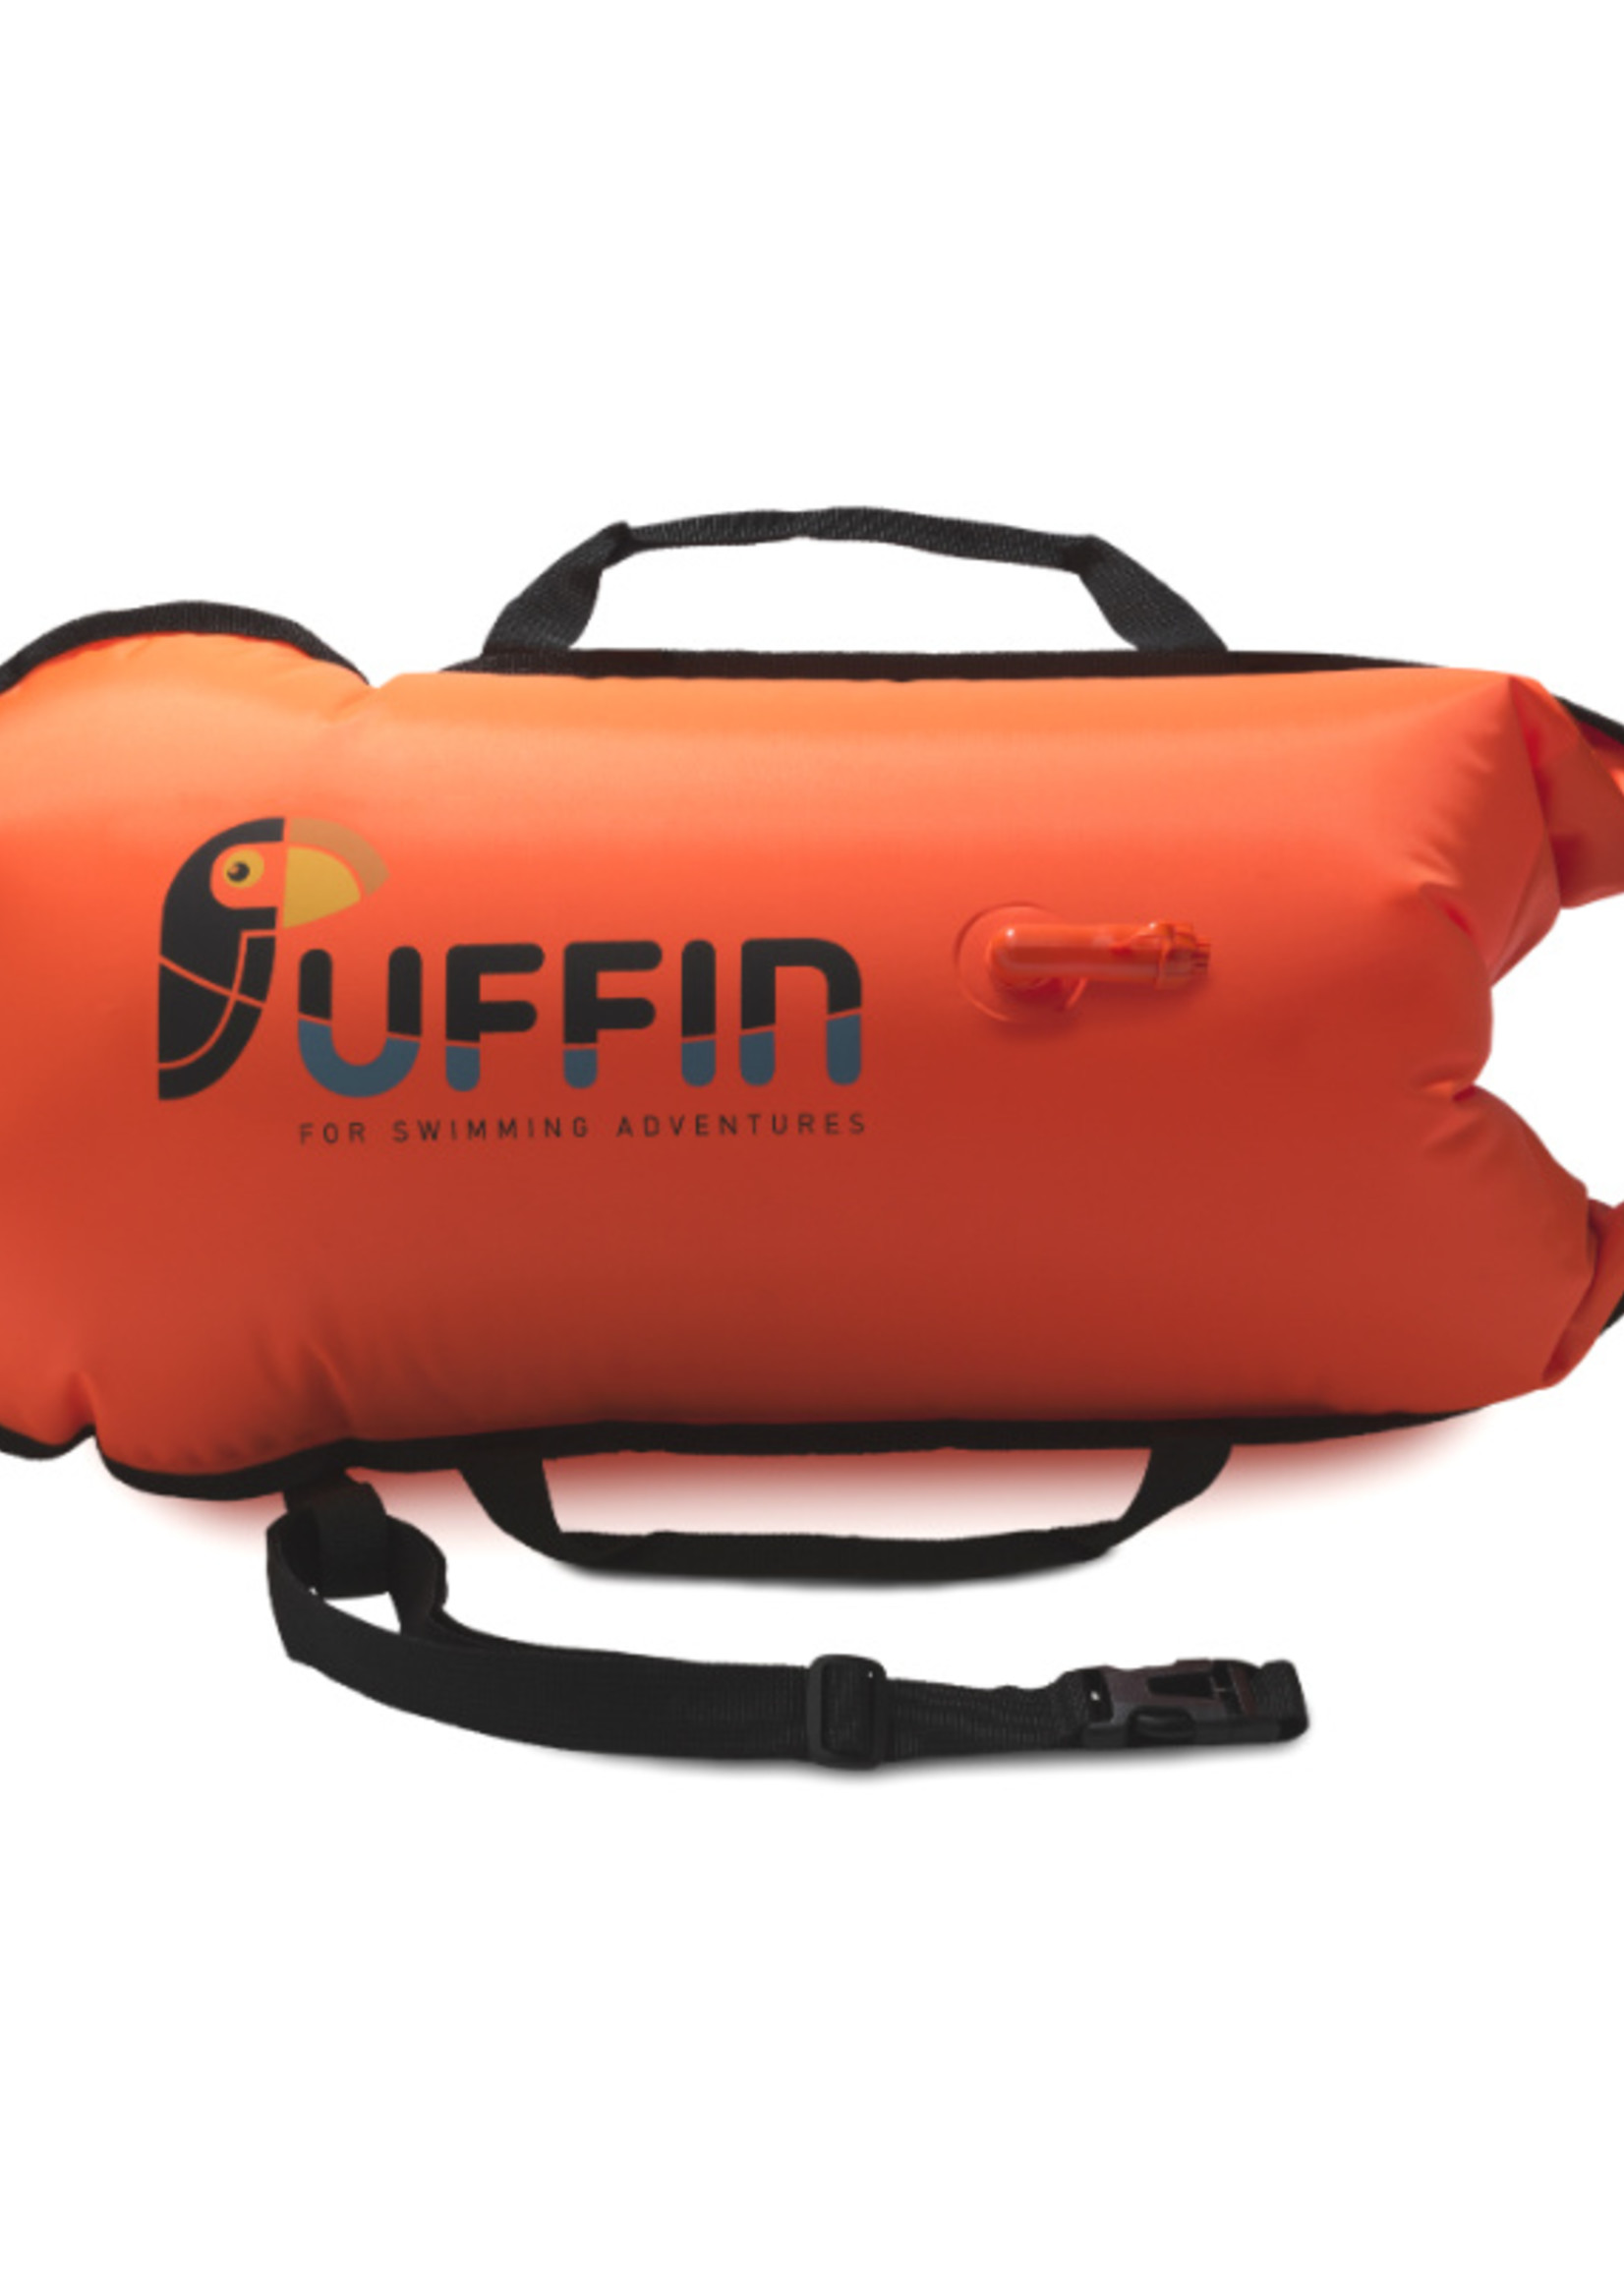 Puffin Puffin 20L Drybag Towfloat